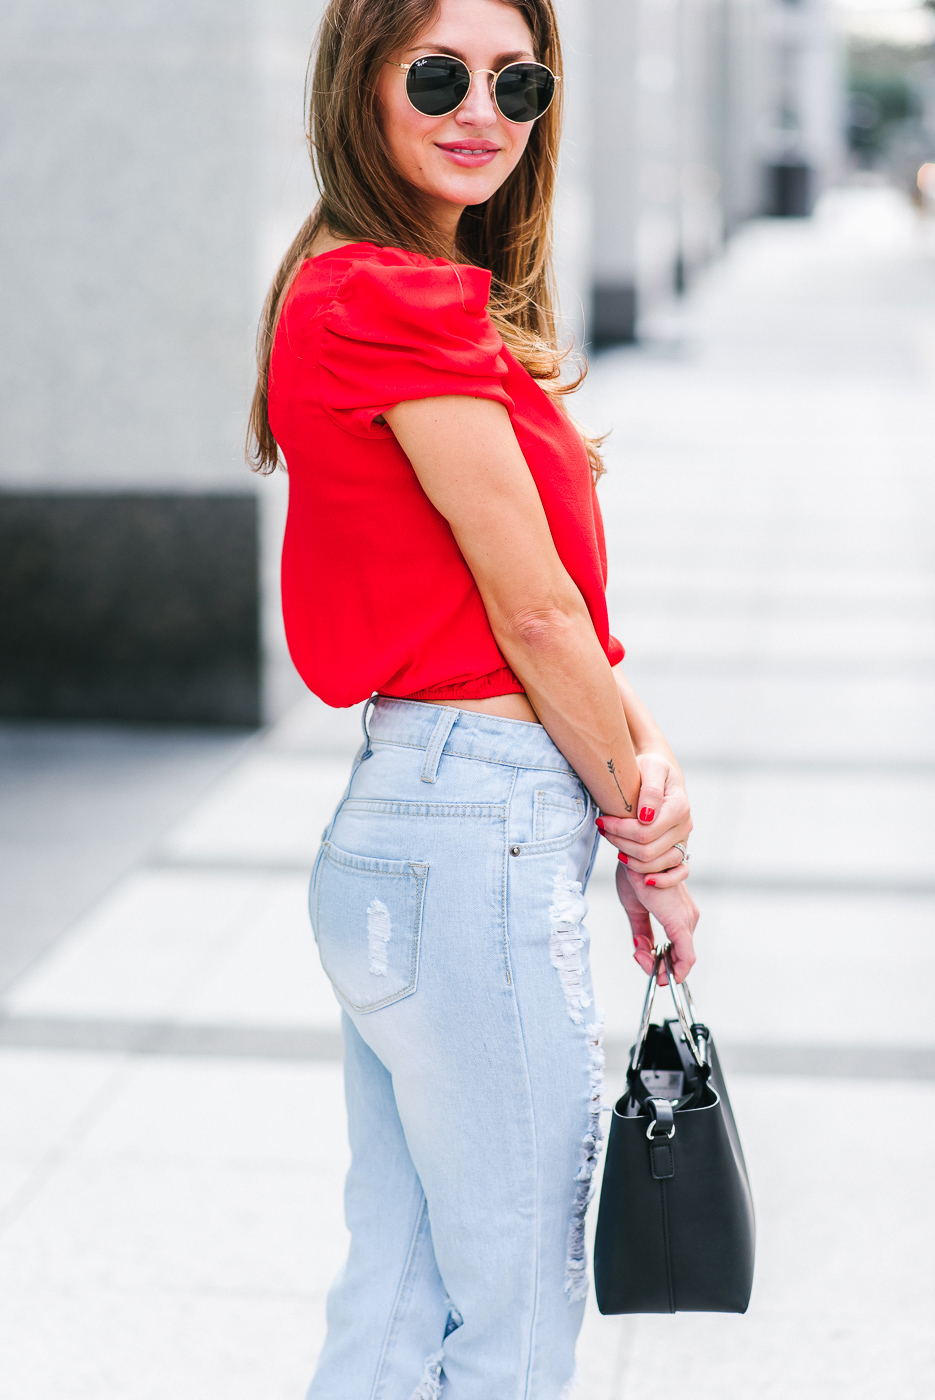 Ashlee Frazier in her 80's mom jeans